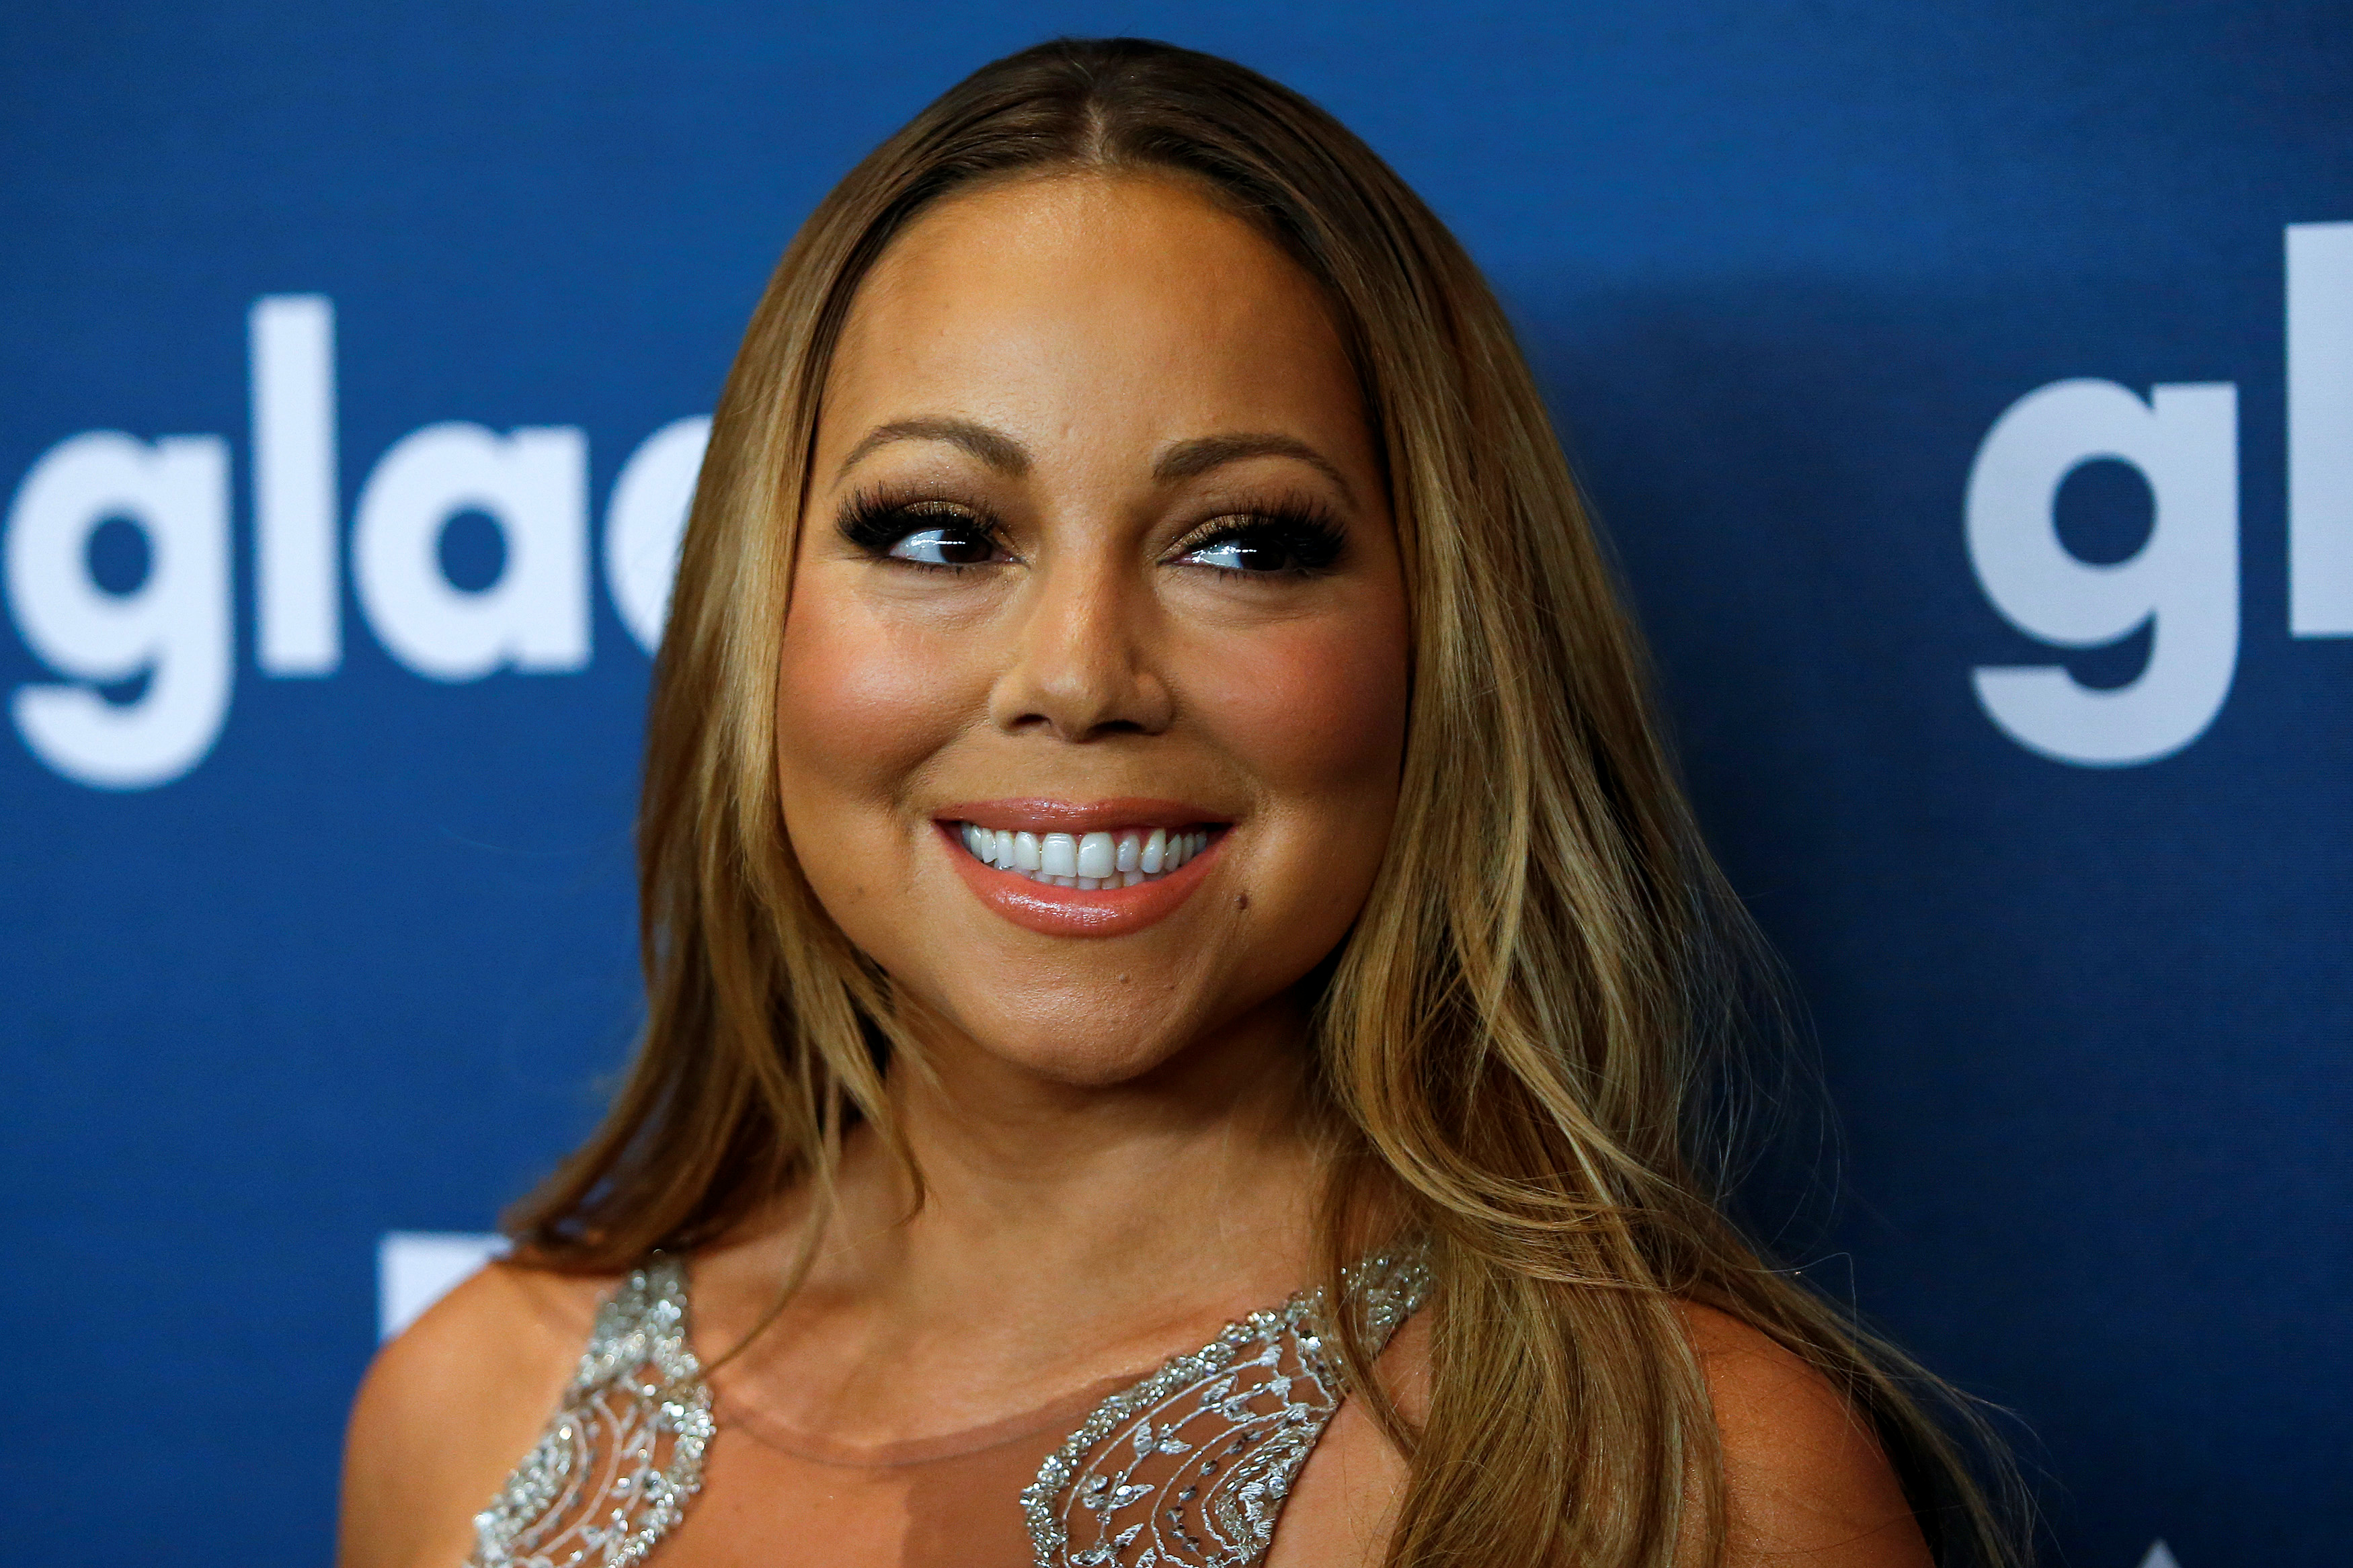 Singer Mariah Carey attends the 27th Annual GLAAD Media Awards in New York May 14, 2016.